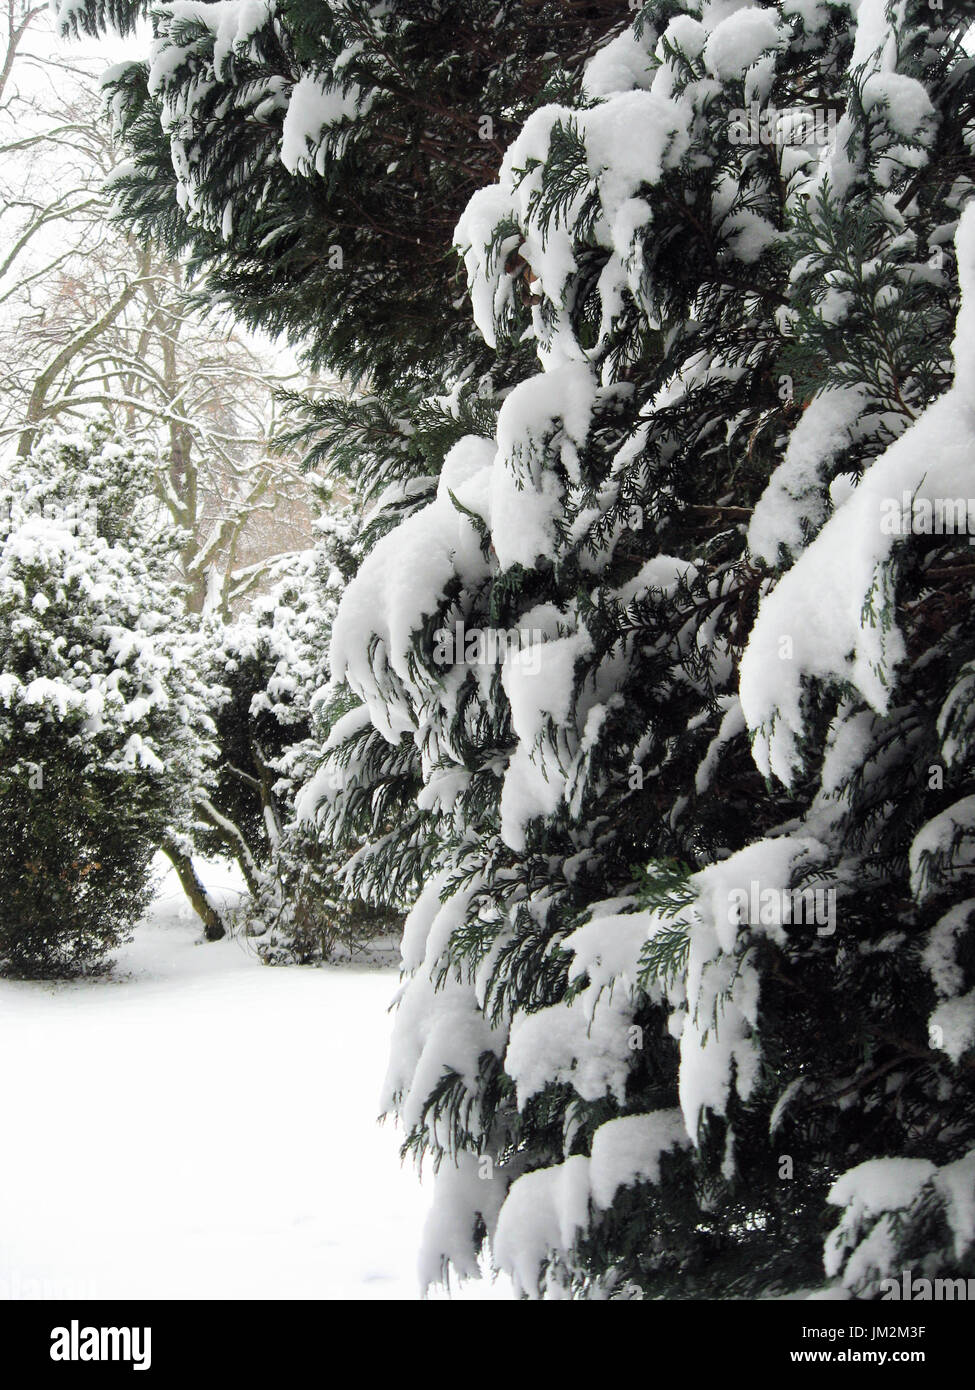 Snow falls on evergreen trees in a park in Basel Switzerland. - Stock Image